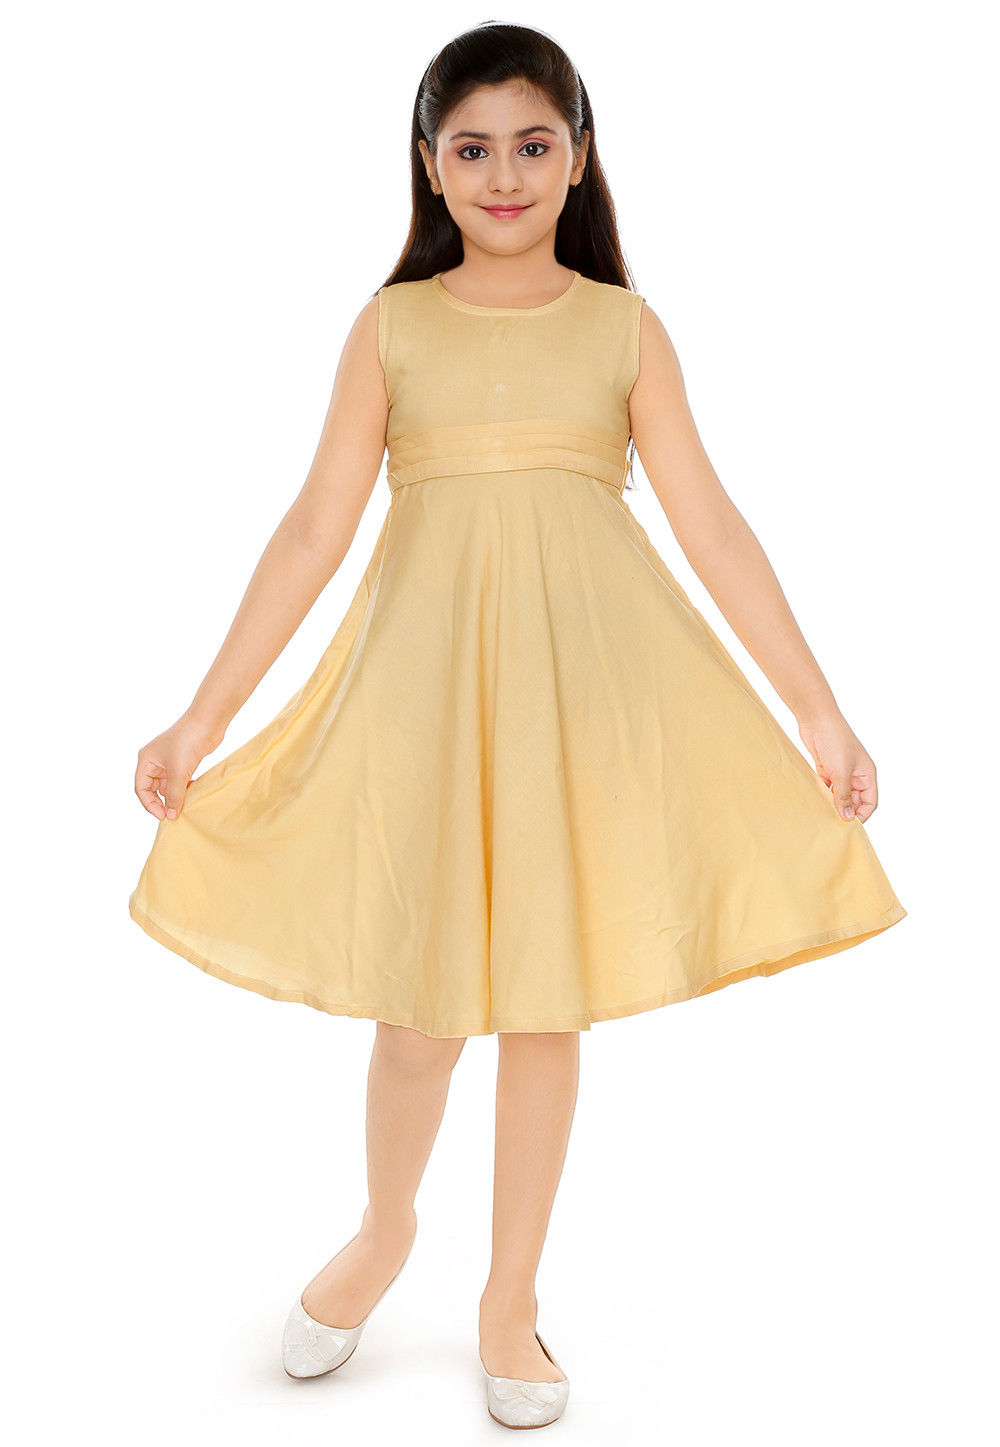 Solid Color Cotton Rayon Dress In Beige Uvt164